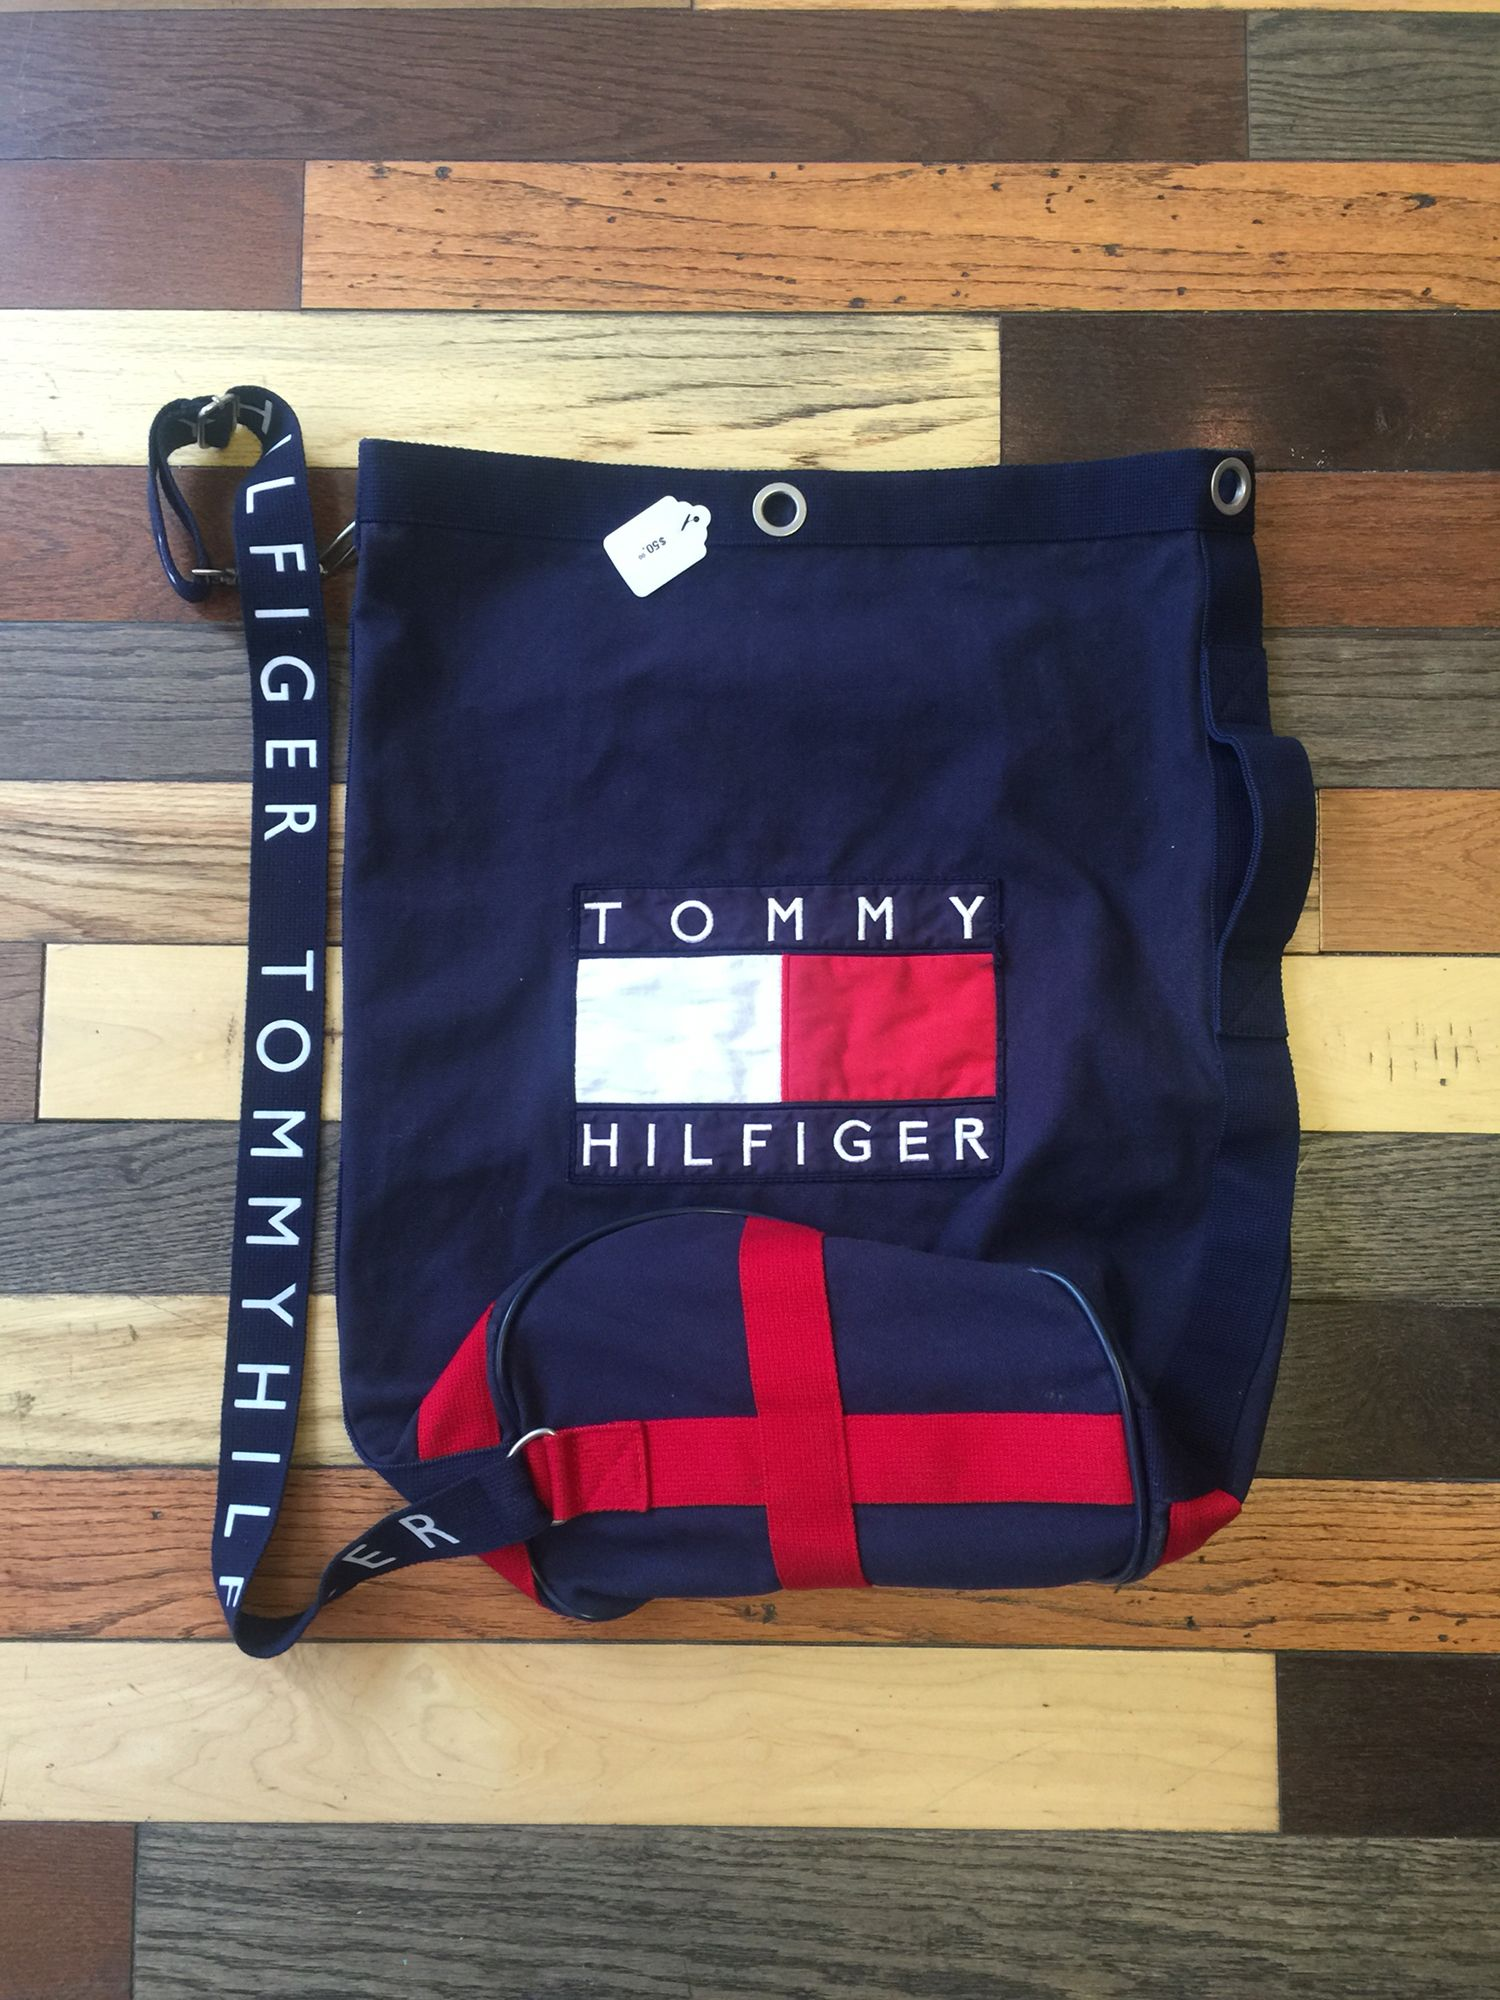 3a42385f9 Vintage 90's Tommy Hilfiger weekend top load bag. This & more vintage  styles on www.stationdenver.com #vintagetommyhilfiger #vintageclothing # tommyhilfiger ...